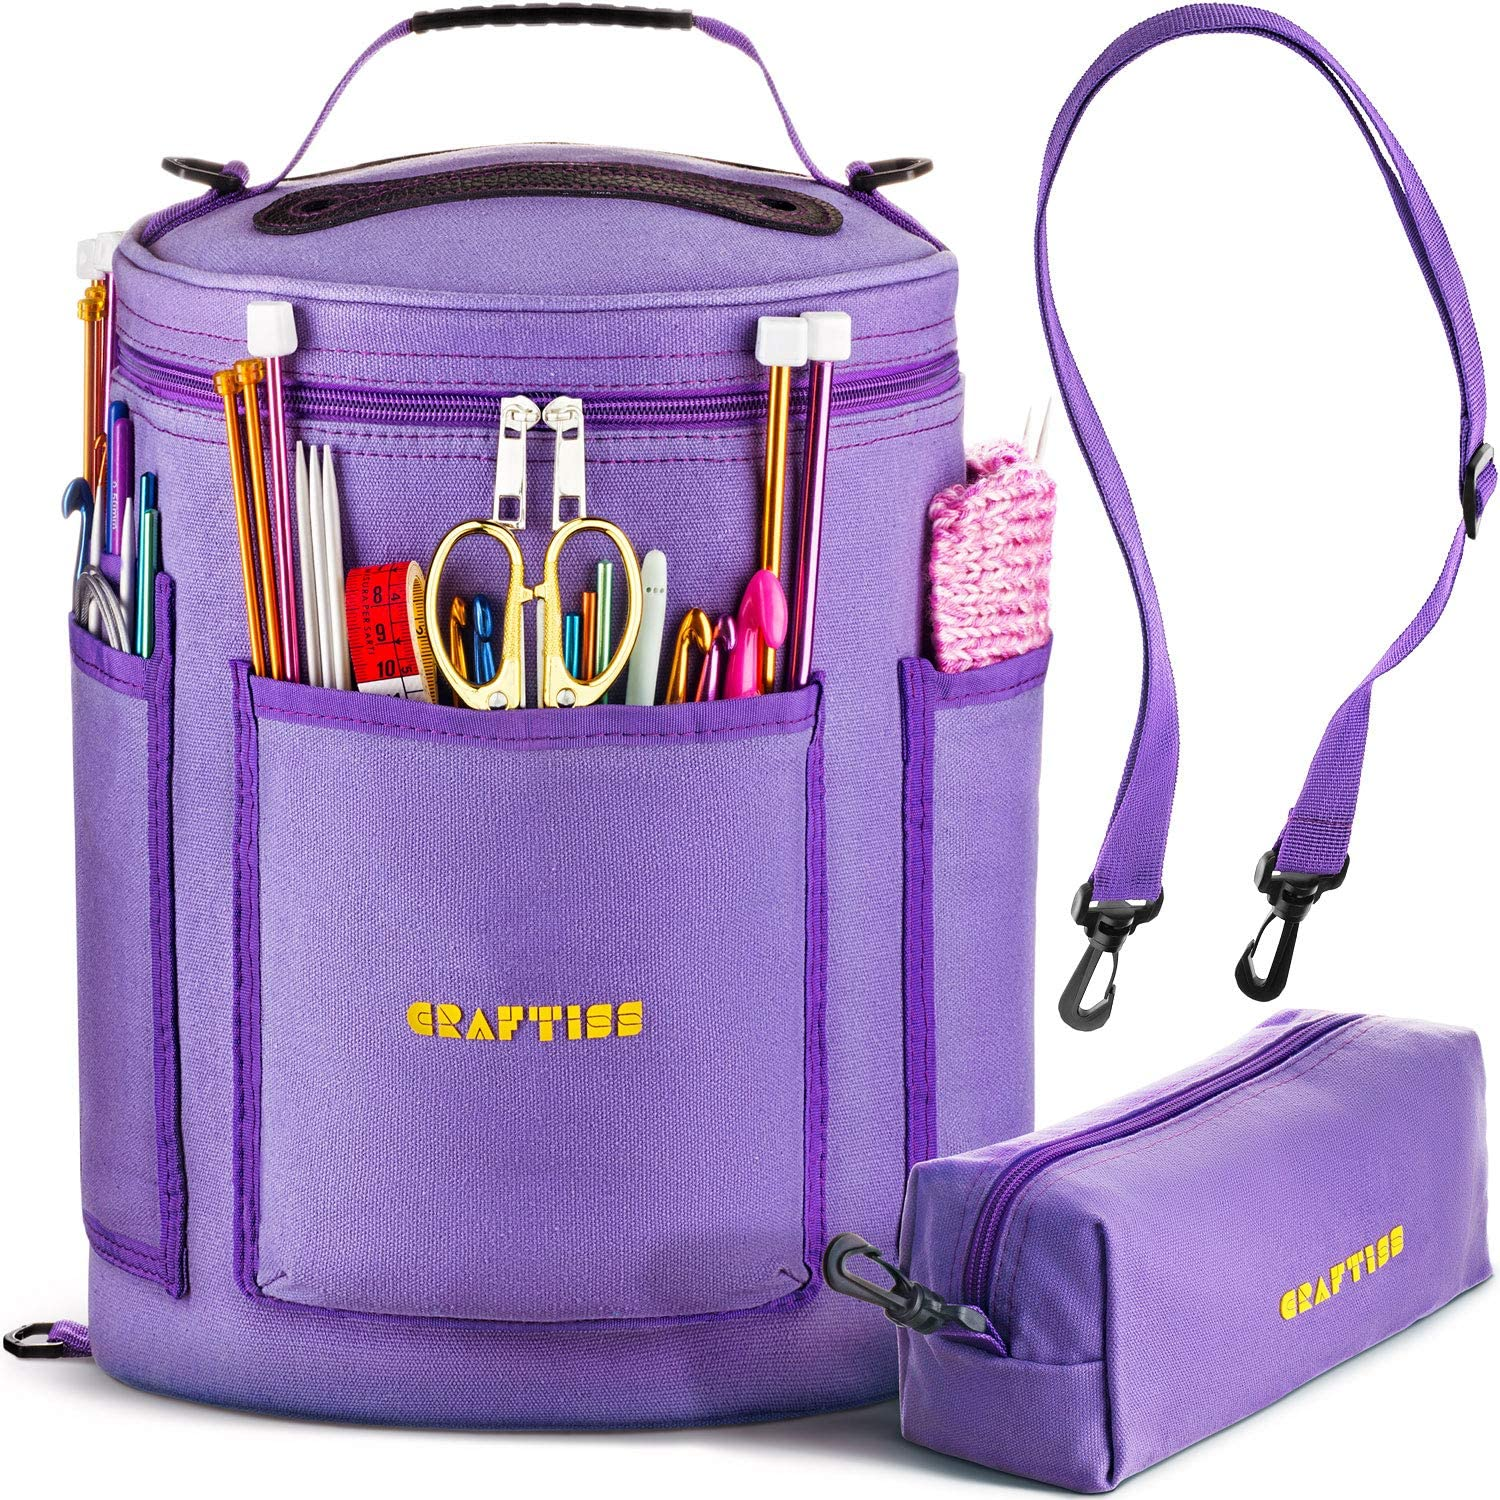 Organizer Bag for Crafts Sewing Paper Art Sewing Accessories Organizer Household Fabric Crafts Knitting Bag Needles Yarn Storage Purple flower